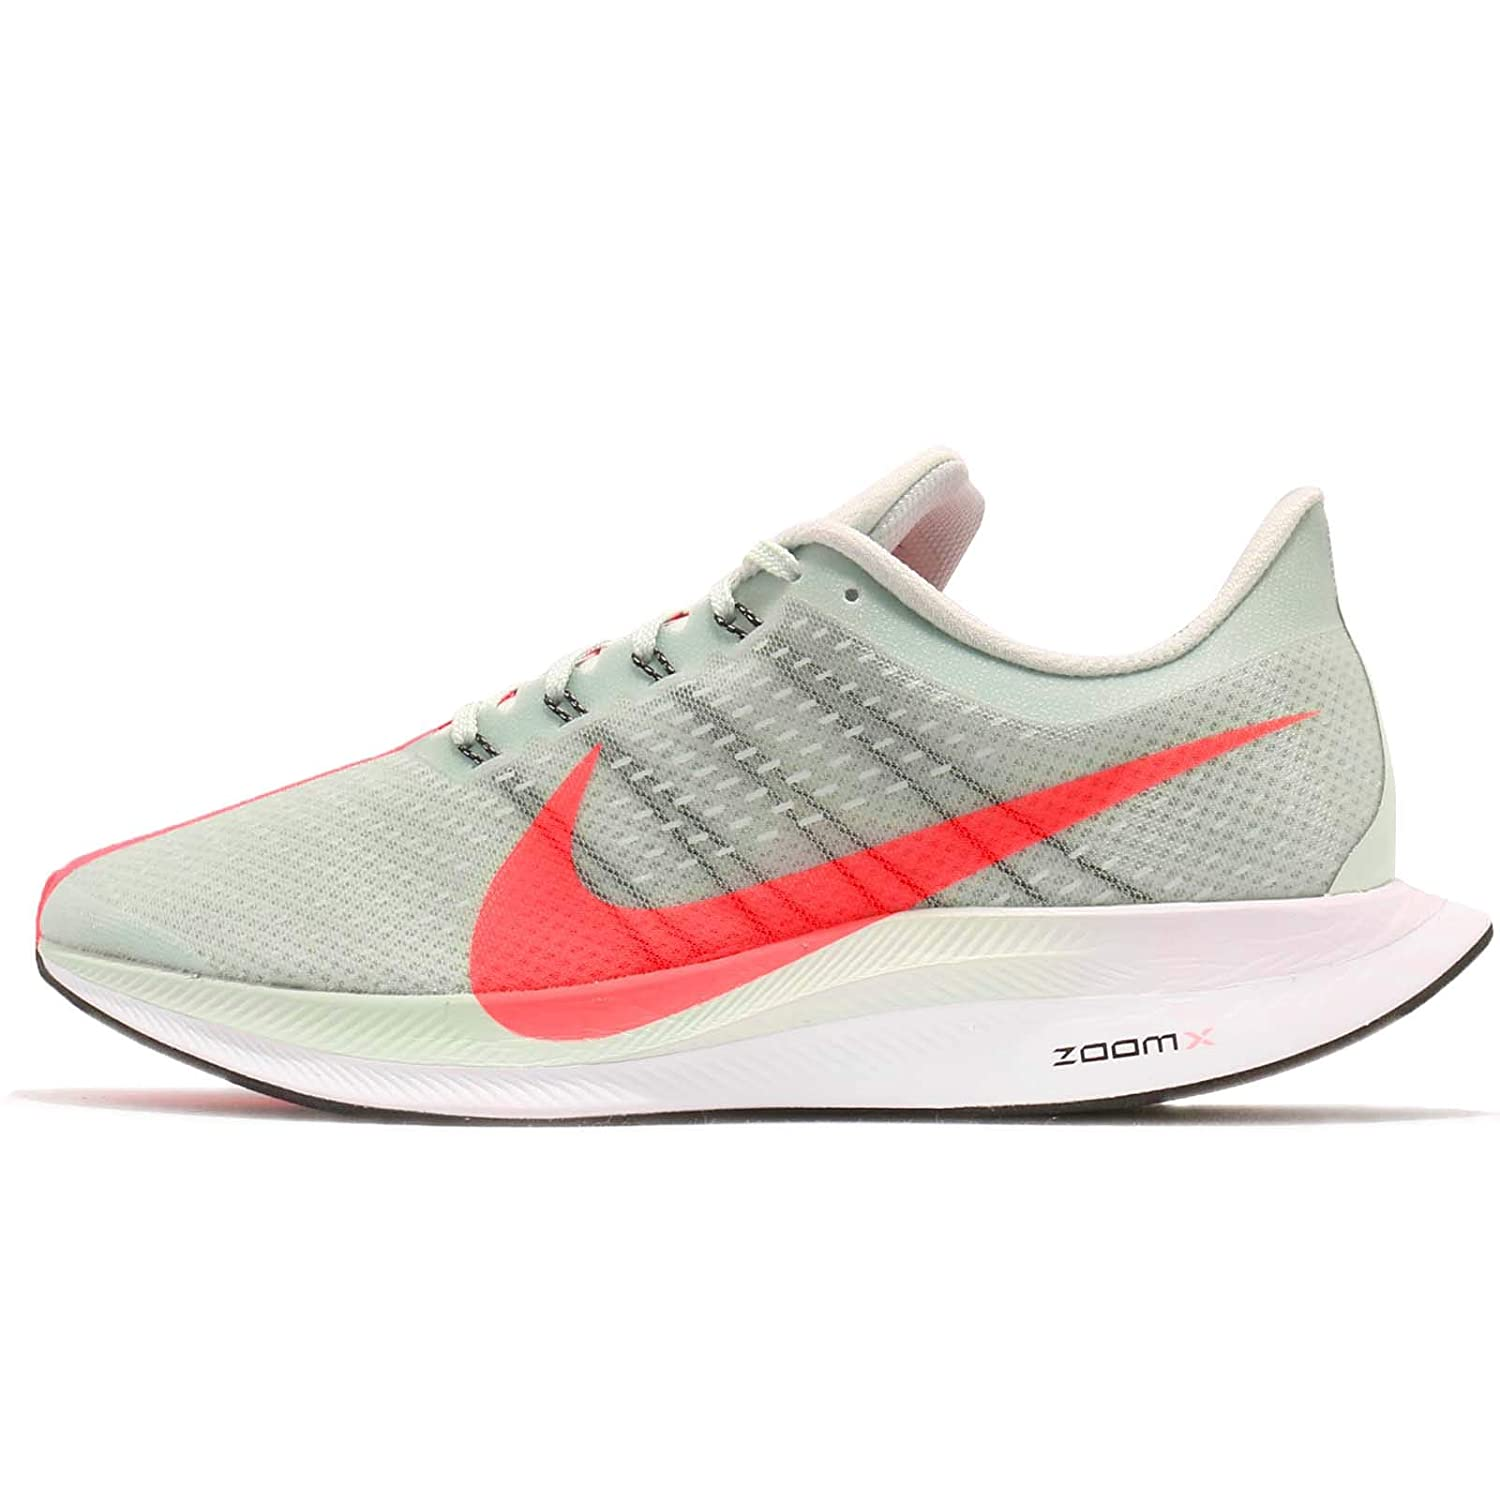 3c84c8c8f831 Amazon.com  Nike Zoom Pegasus 35 Turbo  AJ4114-060  Men Running Shoes  Barely Grey Hot Punch  Health   Personal Care